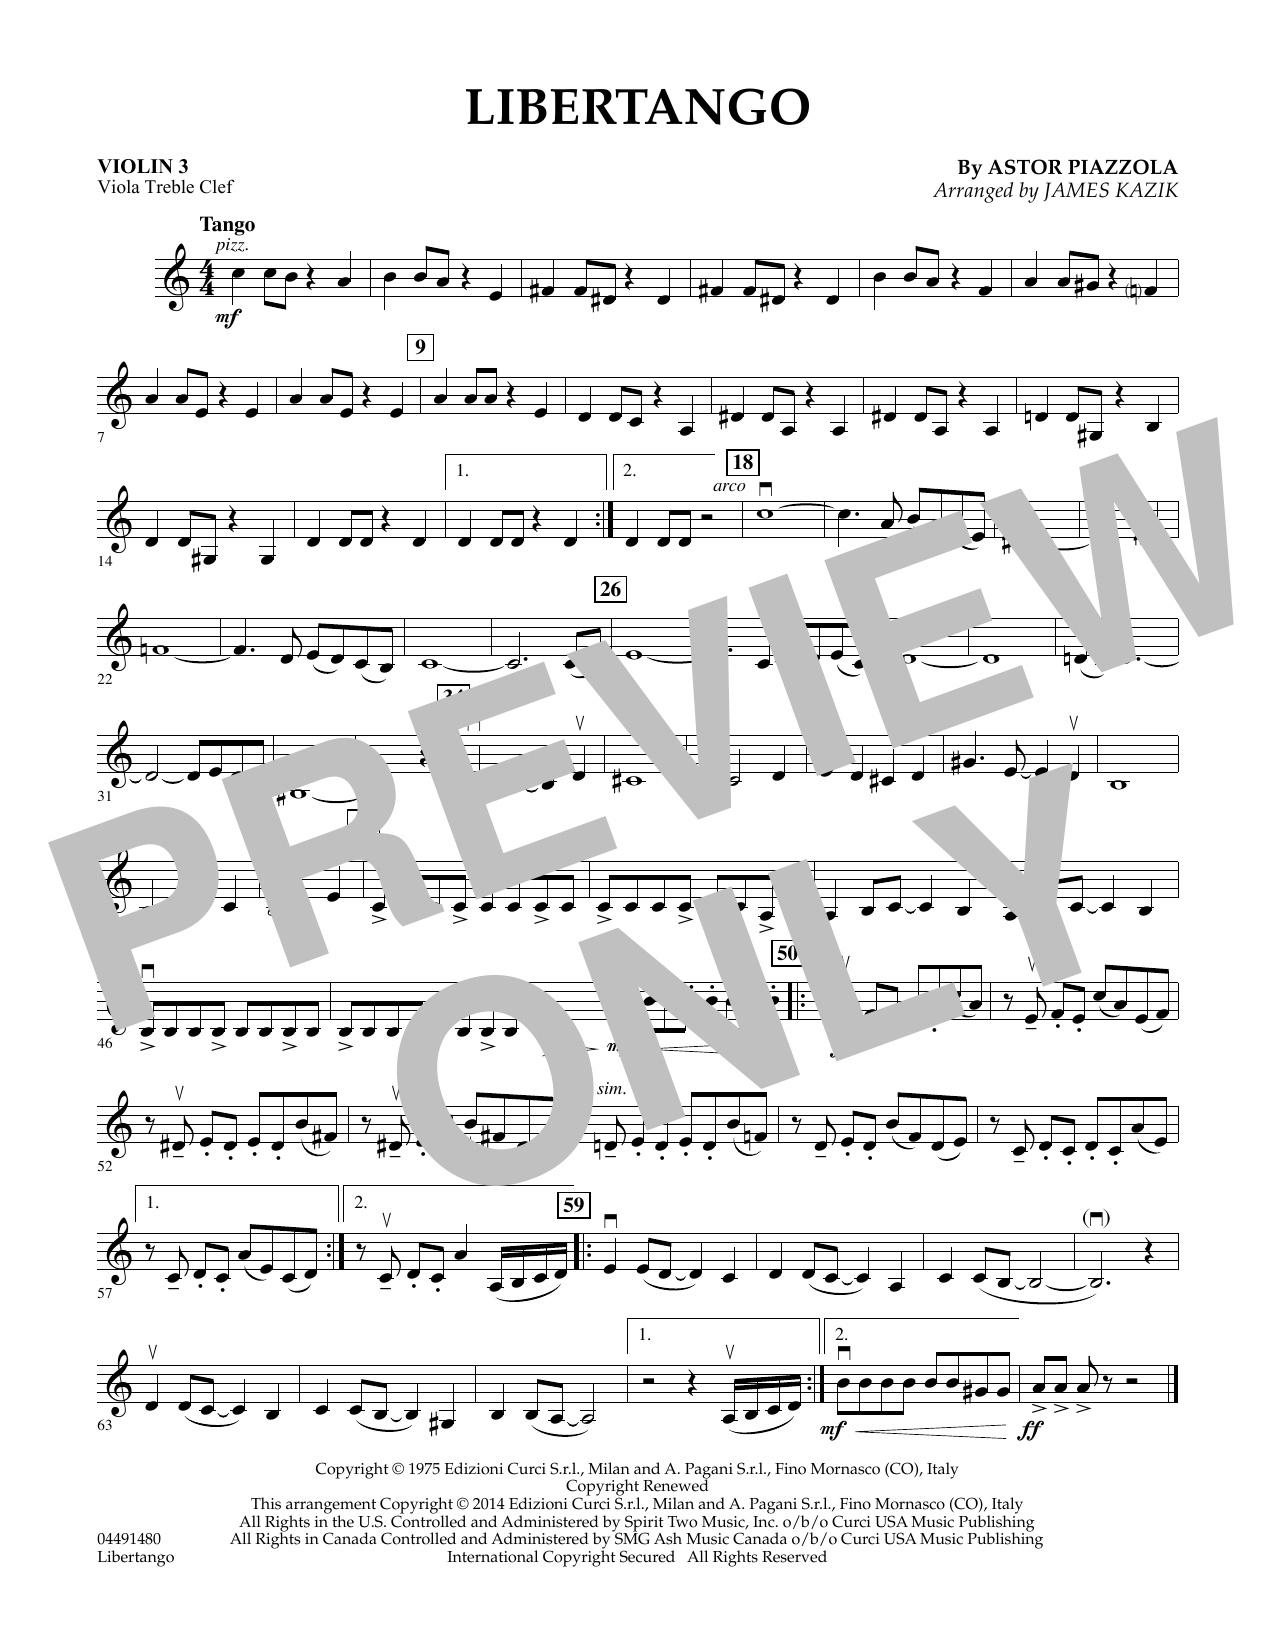 James Kazik Libertango - Violin 3 (Viola Treble Clef) sheet music preview music notes and score for Orchestra including 1 page(s)